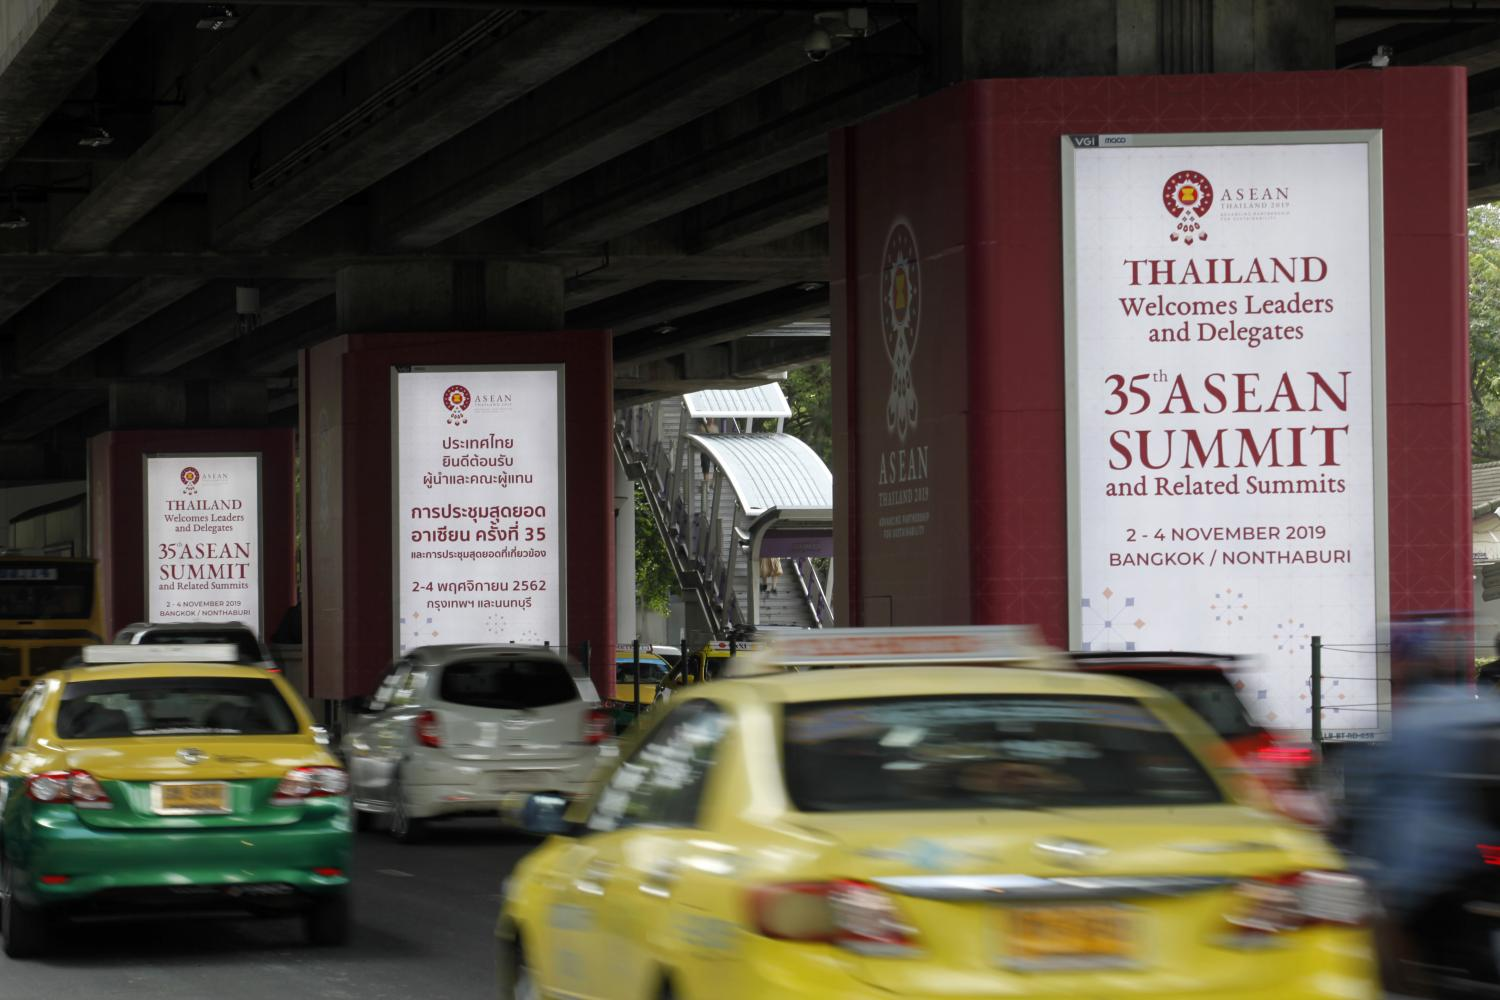 Signs are erected on Ratchadamri Road informing motorists of the upcoming 35th Asean Summit, scheduled from Nov 2-4 at Muang Thong Thani.(Photo by Wichan Charoenkiatpakul)